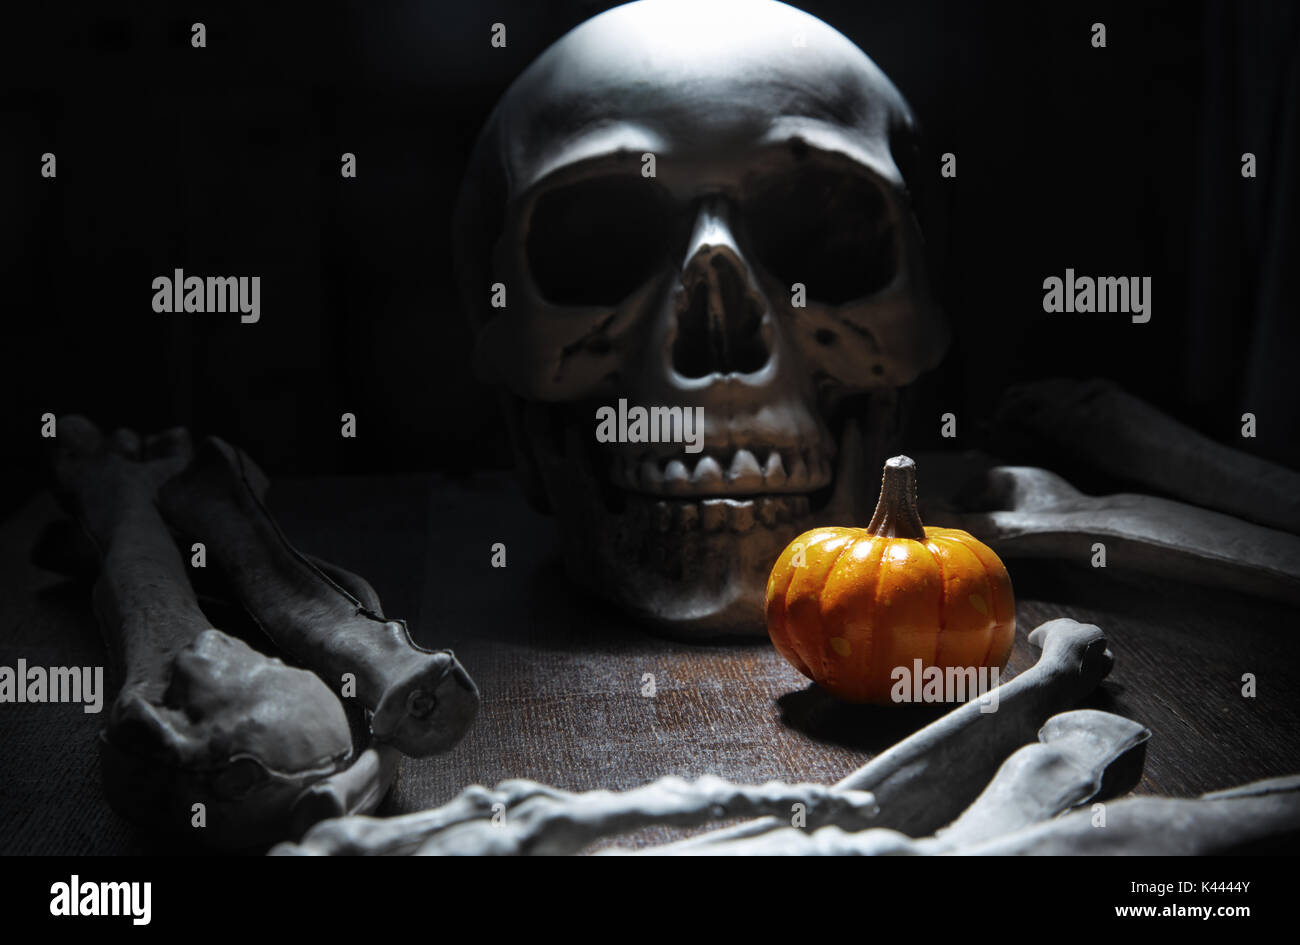 Human bones and skull on the table with Halloween pumpkin - Stock Image